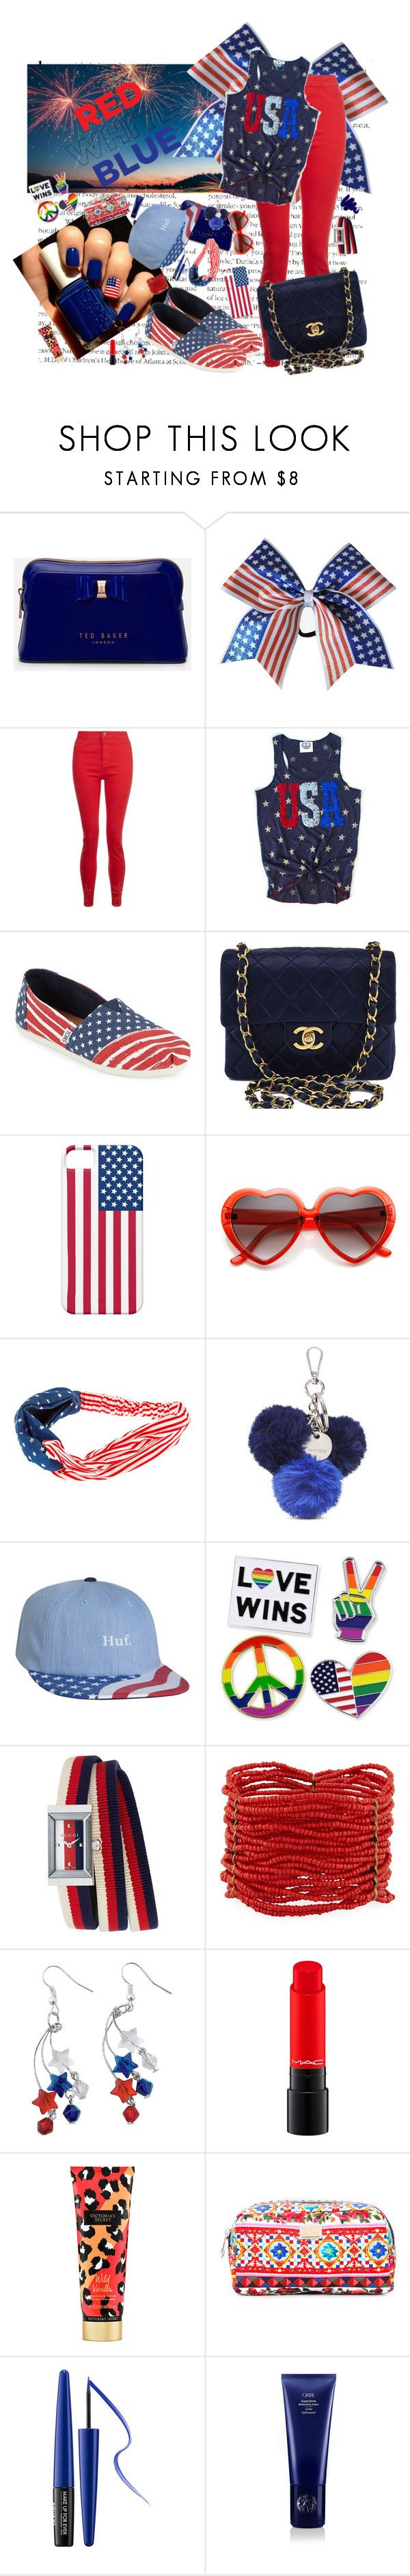 """""""It's a party in the USA! Happy fourth of July!"""" by staystrong-believe ❤ liked on Polyvore featuring Ted Baker, TOMS, Chanel, Nine West, HUF, Gucci, Berry, Victoria's Secret, Dolce&Gabbana and MAKE UP FOR EVER"""